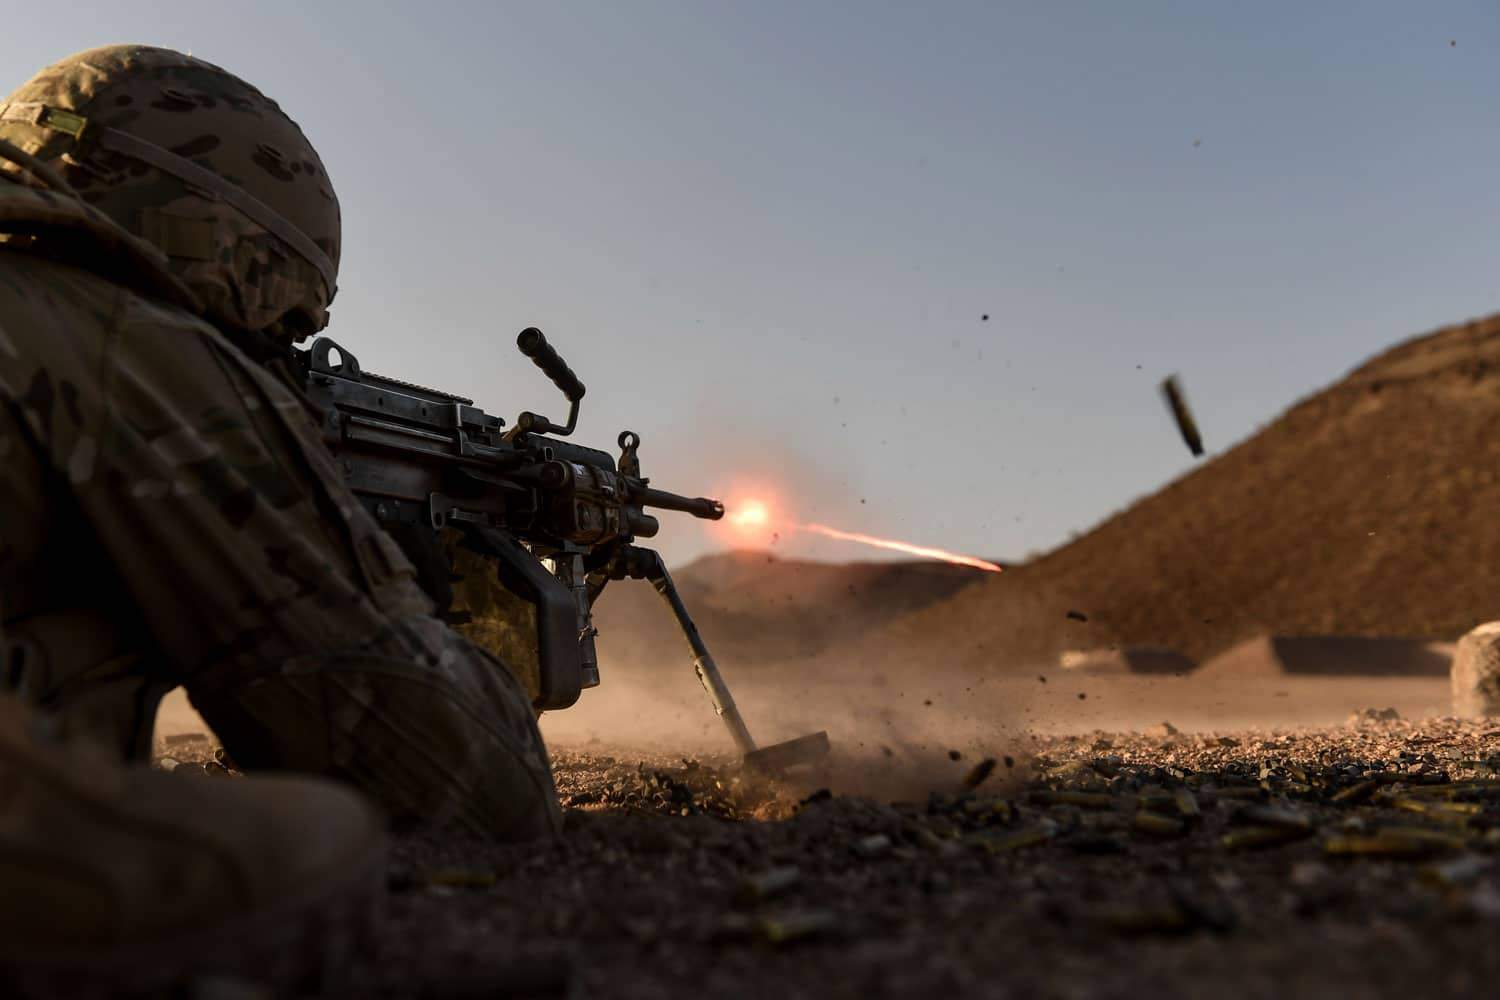 U.S. Army Soldiers assigned to Combined Joint Task Force-Horn of Africa's East African Response Force, conduct a series of team stress shoots and support by fire exercises in Djibouti, Africa.